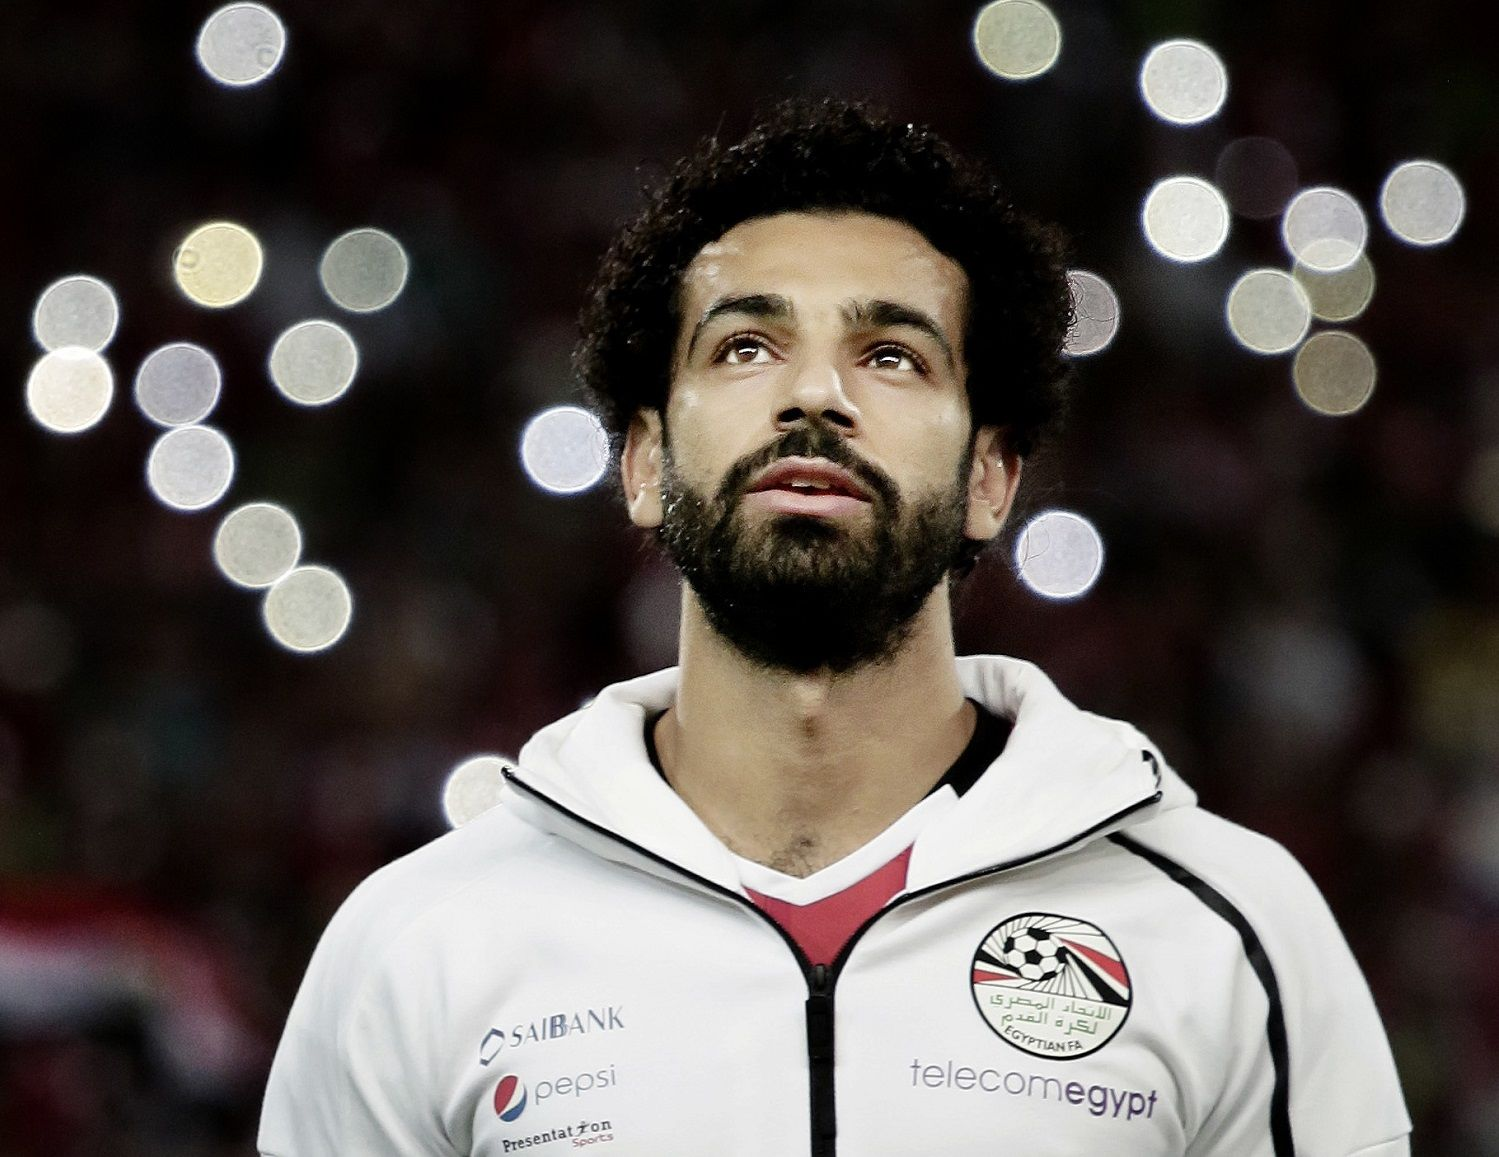 Egypt's Mohamed Salah sings the national anthem before the 2018 World Cup group E qualifying soccer match between Egypt and Congo at the Borg El Arab Stadium in Alexandria, Egypt, Sunday, Oct. 8, 2017. Egypt won 2-1. (AP Photo/Nariman El-Mofty)